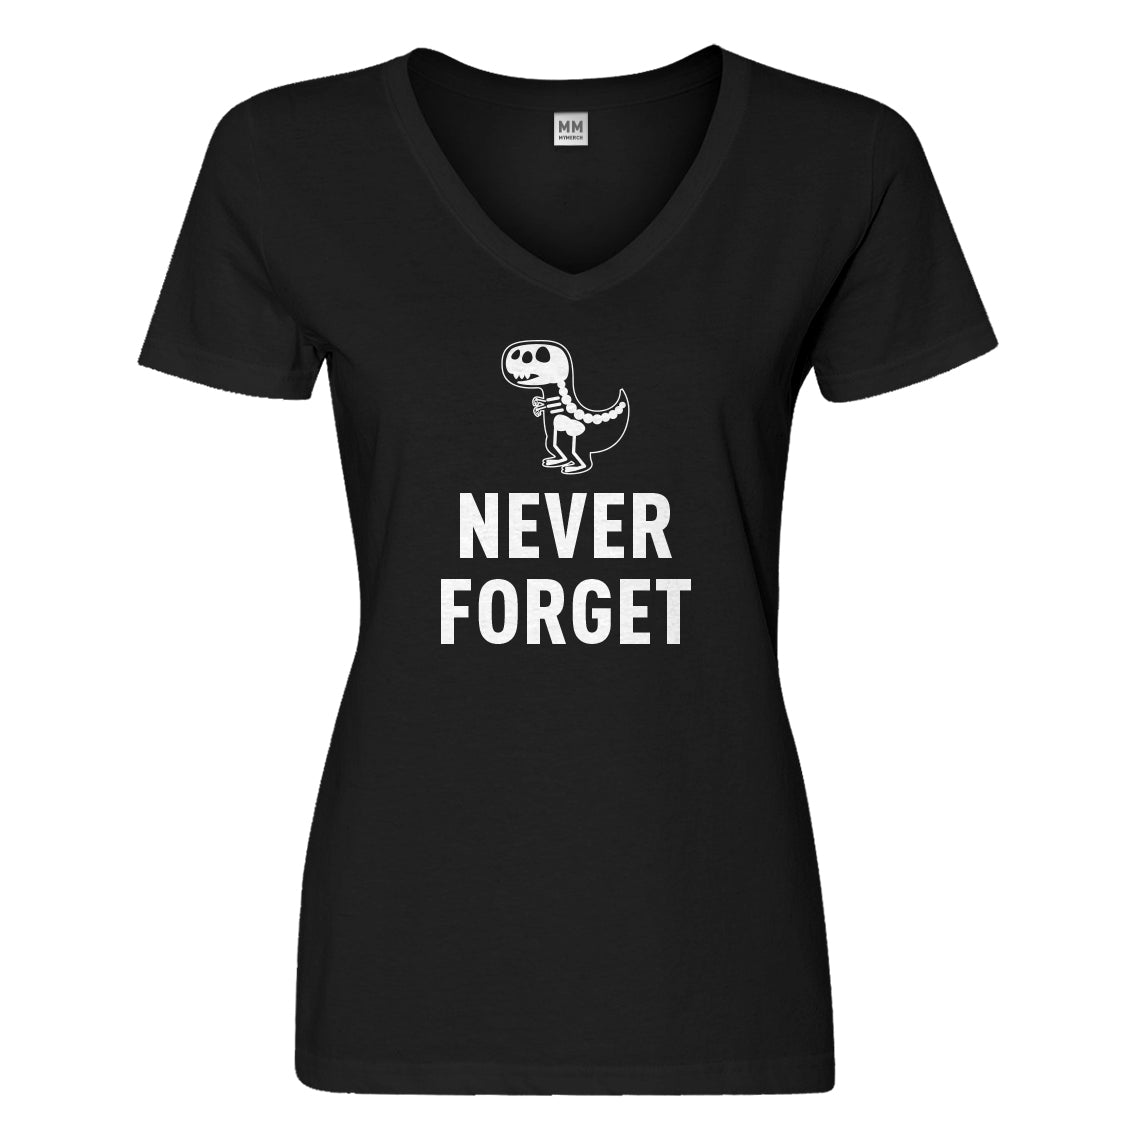 Womens Never Forget Vneck T-shirt